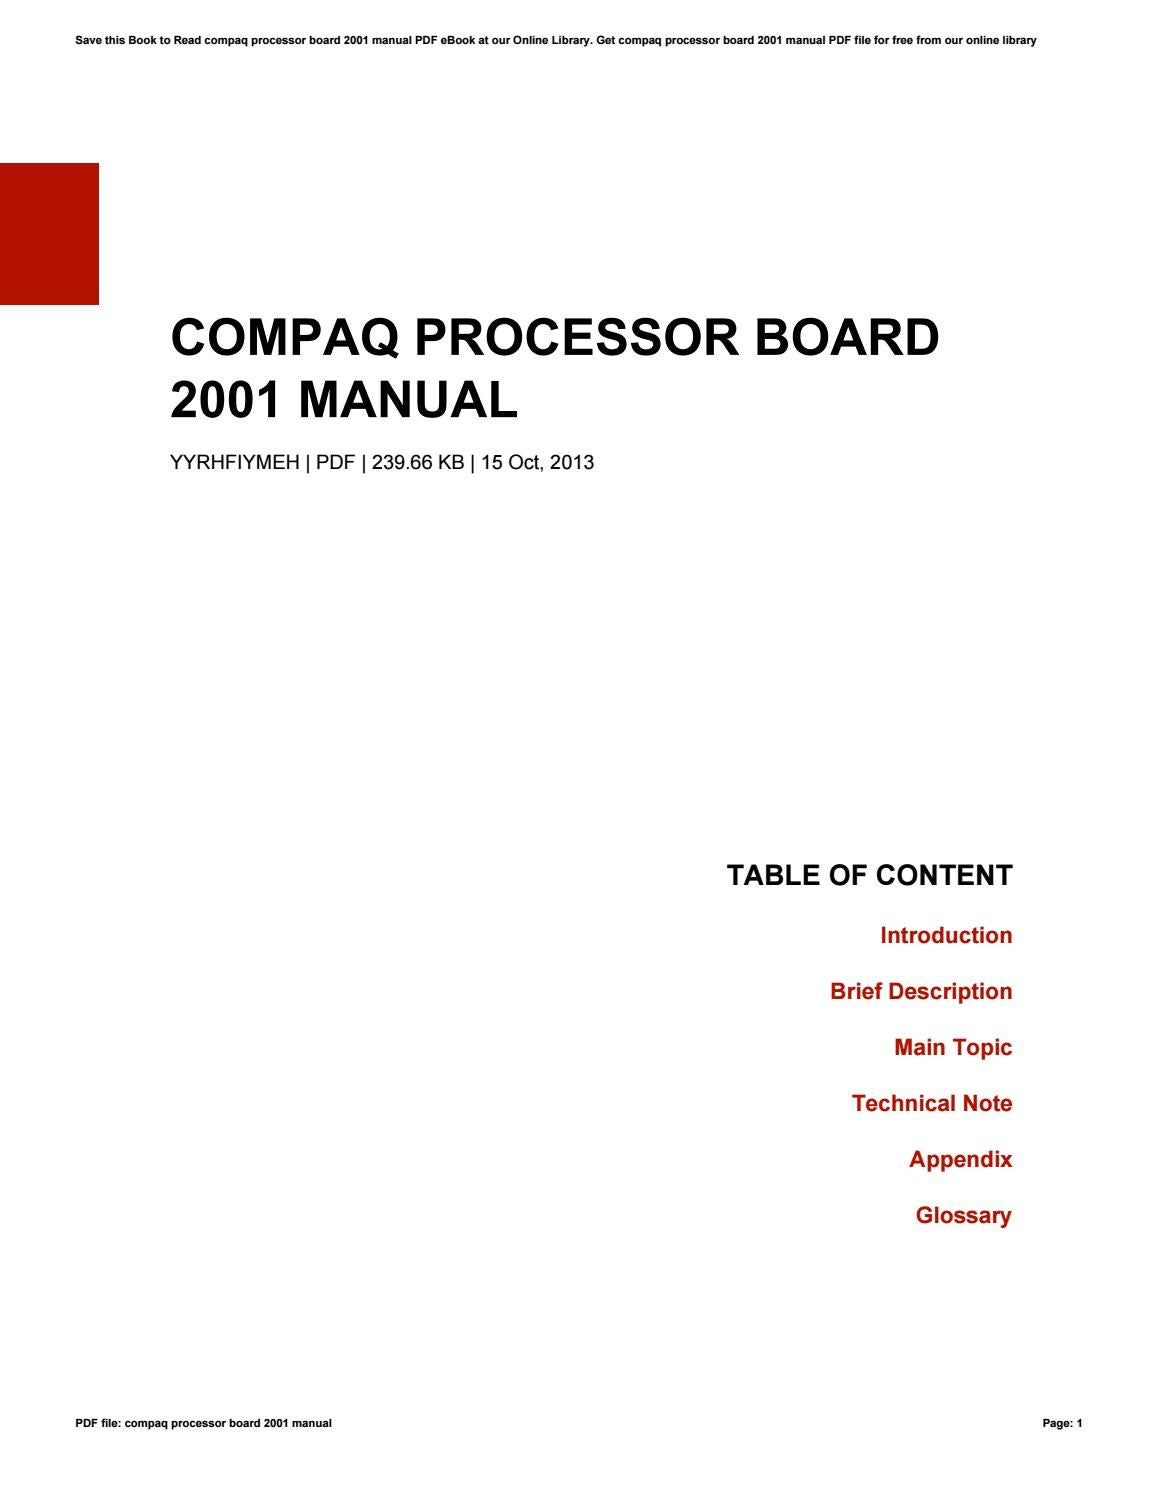 Compaq processor board 2001 manual by MichelleMarquis1660